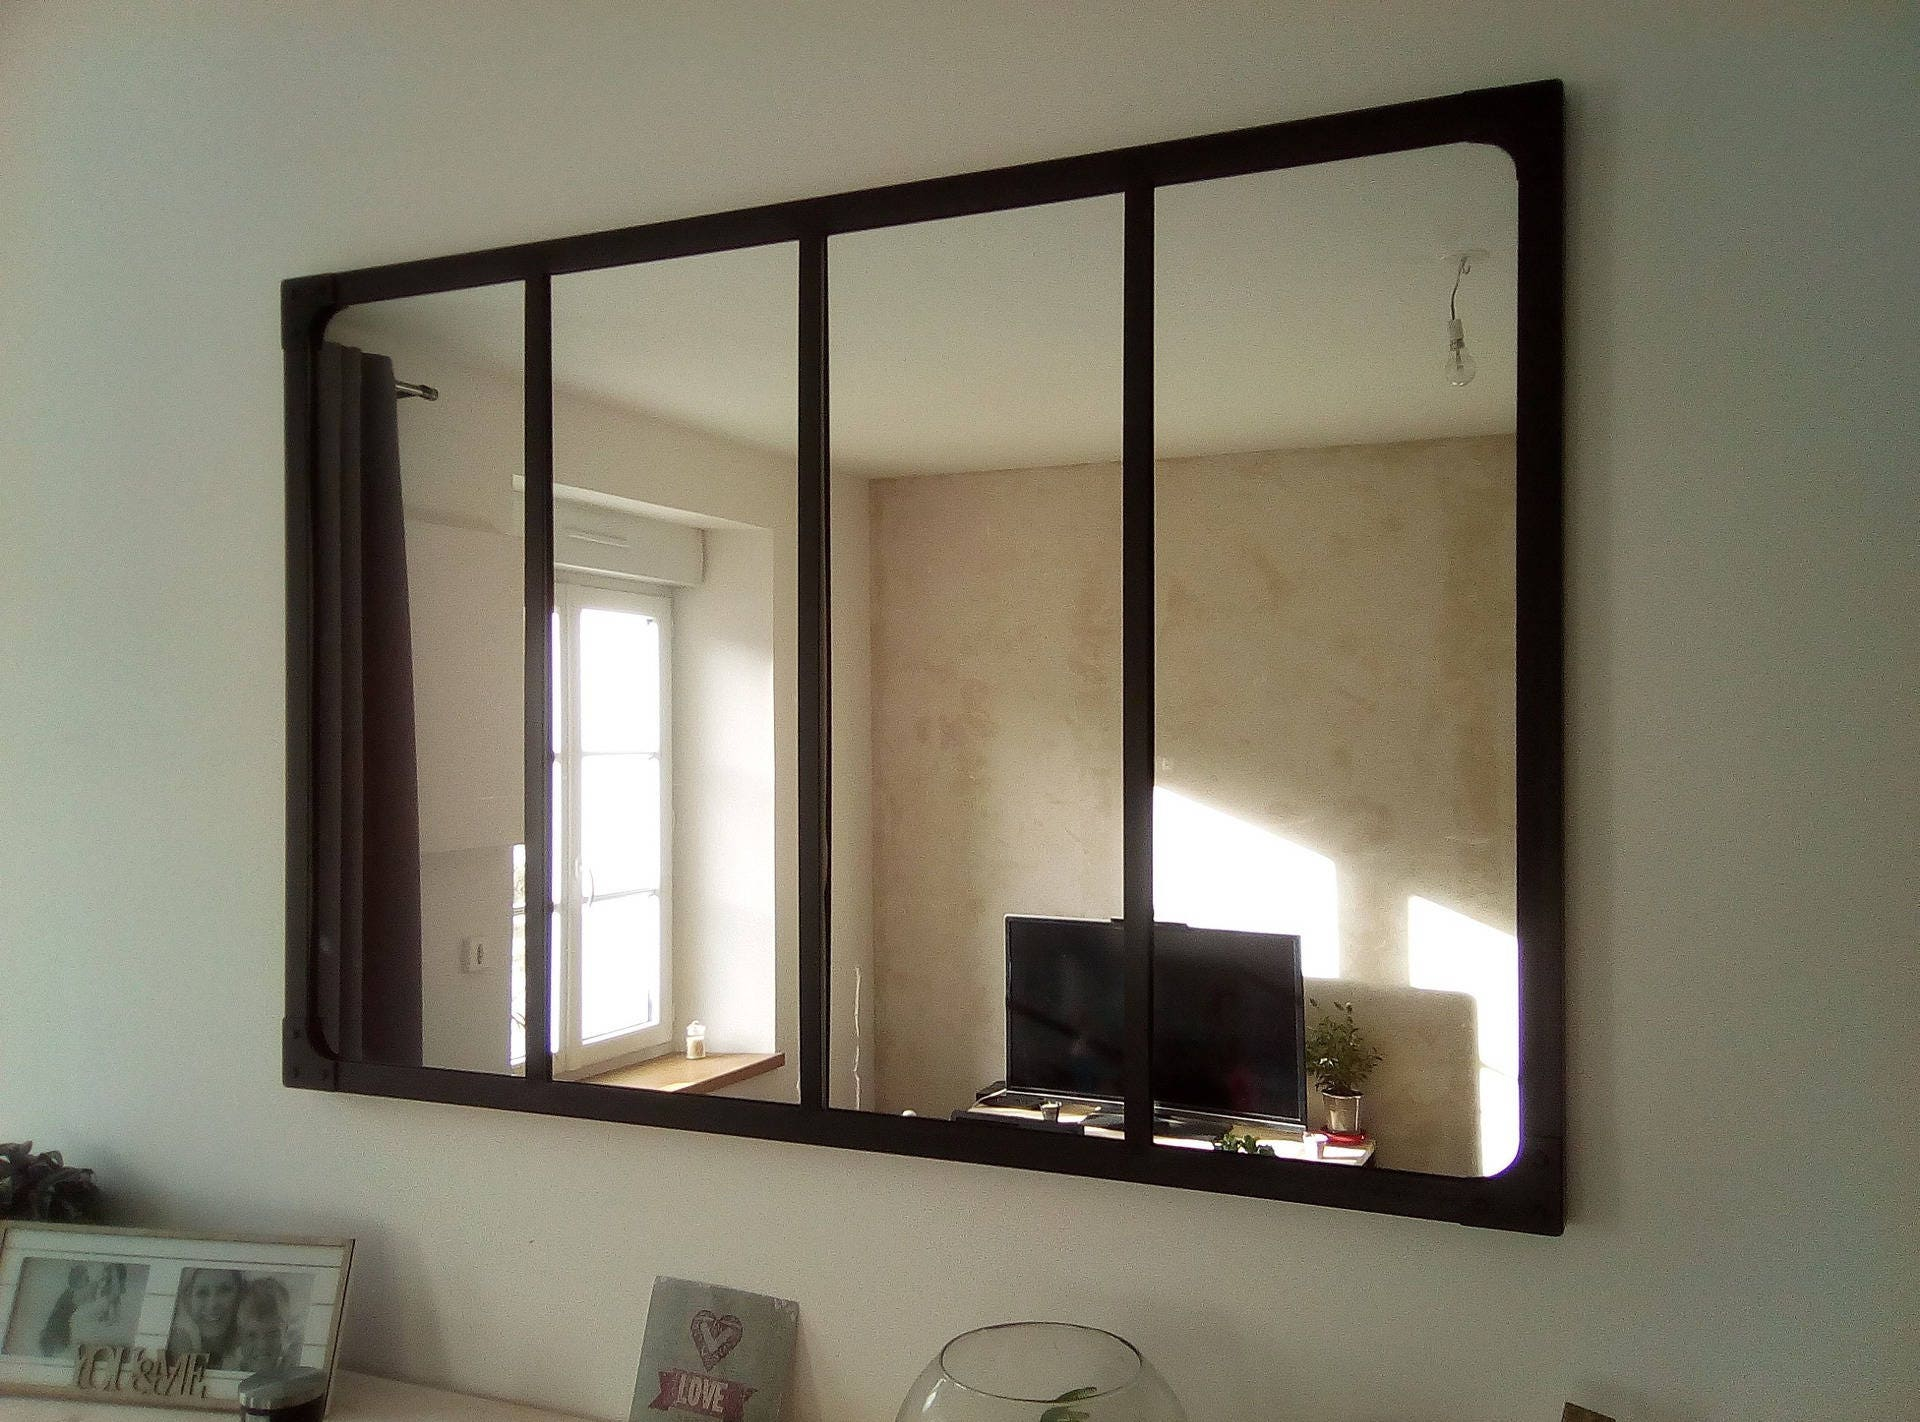 miroir style verri re industriel 120x80 cm On miroir style verriere